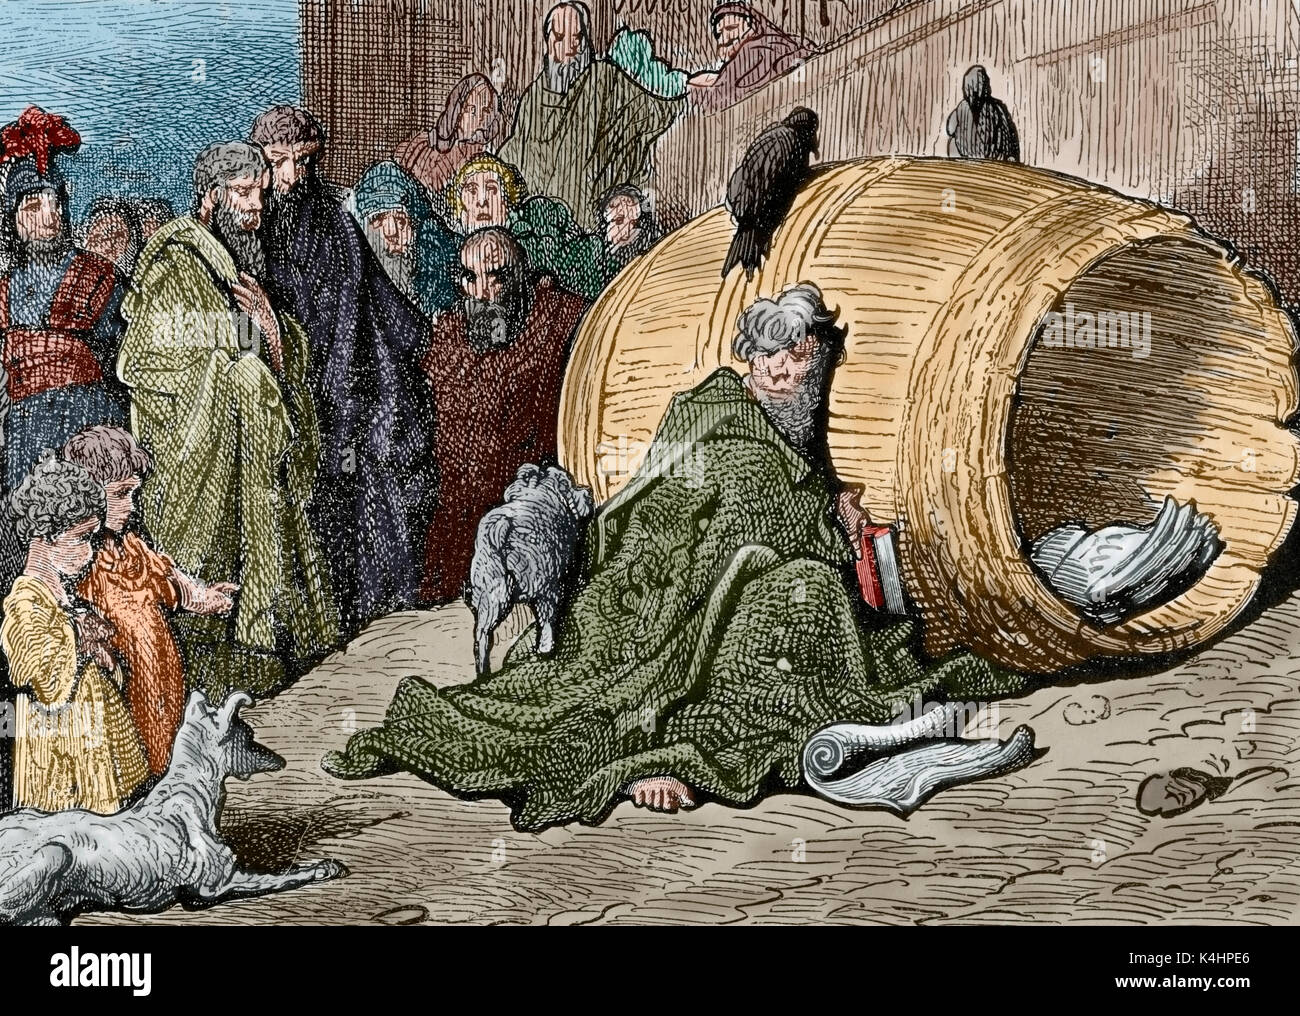 Diogenes (412-323 B.C.). Greek philosopher. One of the founders of Cynic philosophy. Also known as Diogenes the Cynic. Diogenes shelters in his barrel. Engraving by Gustave Dore. Colored. - Stock Image